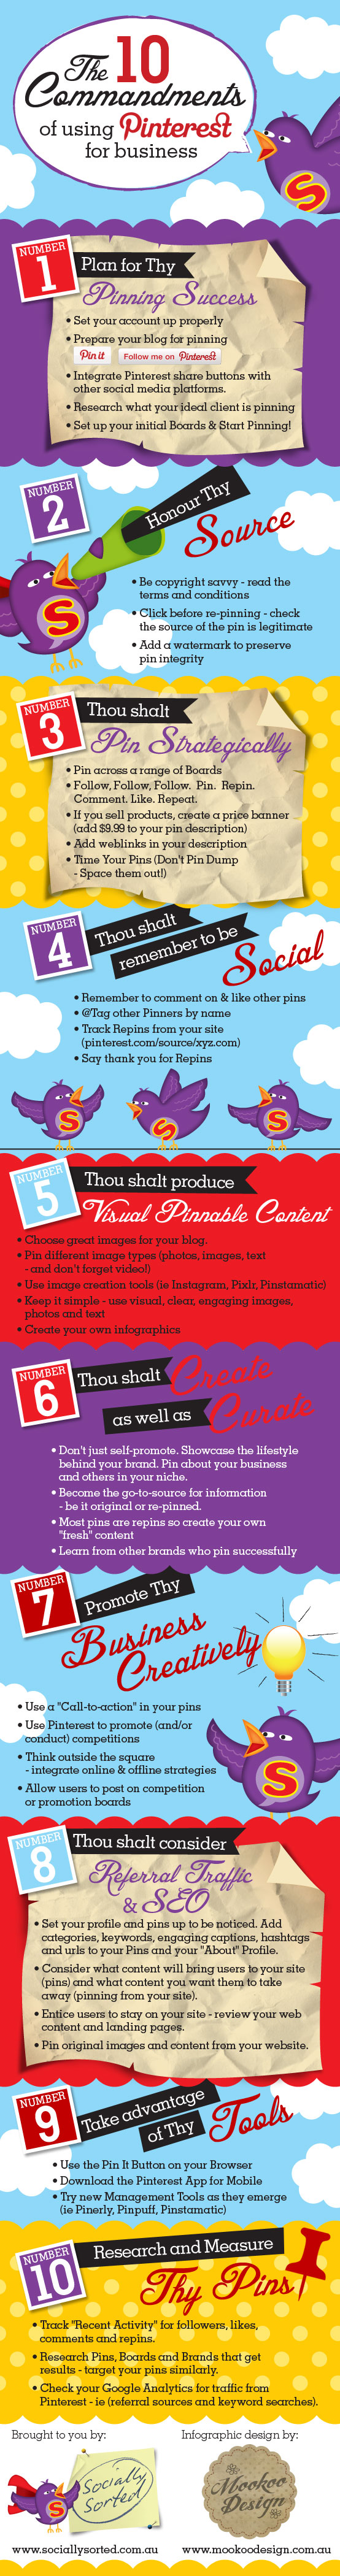 10 commandments of using pinterest for business resized 600